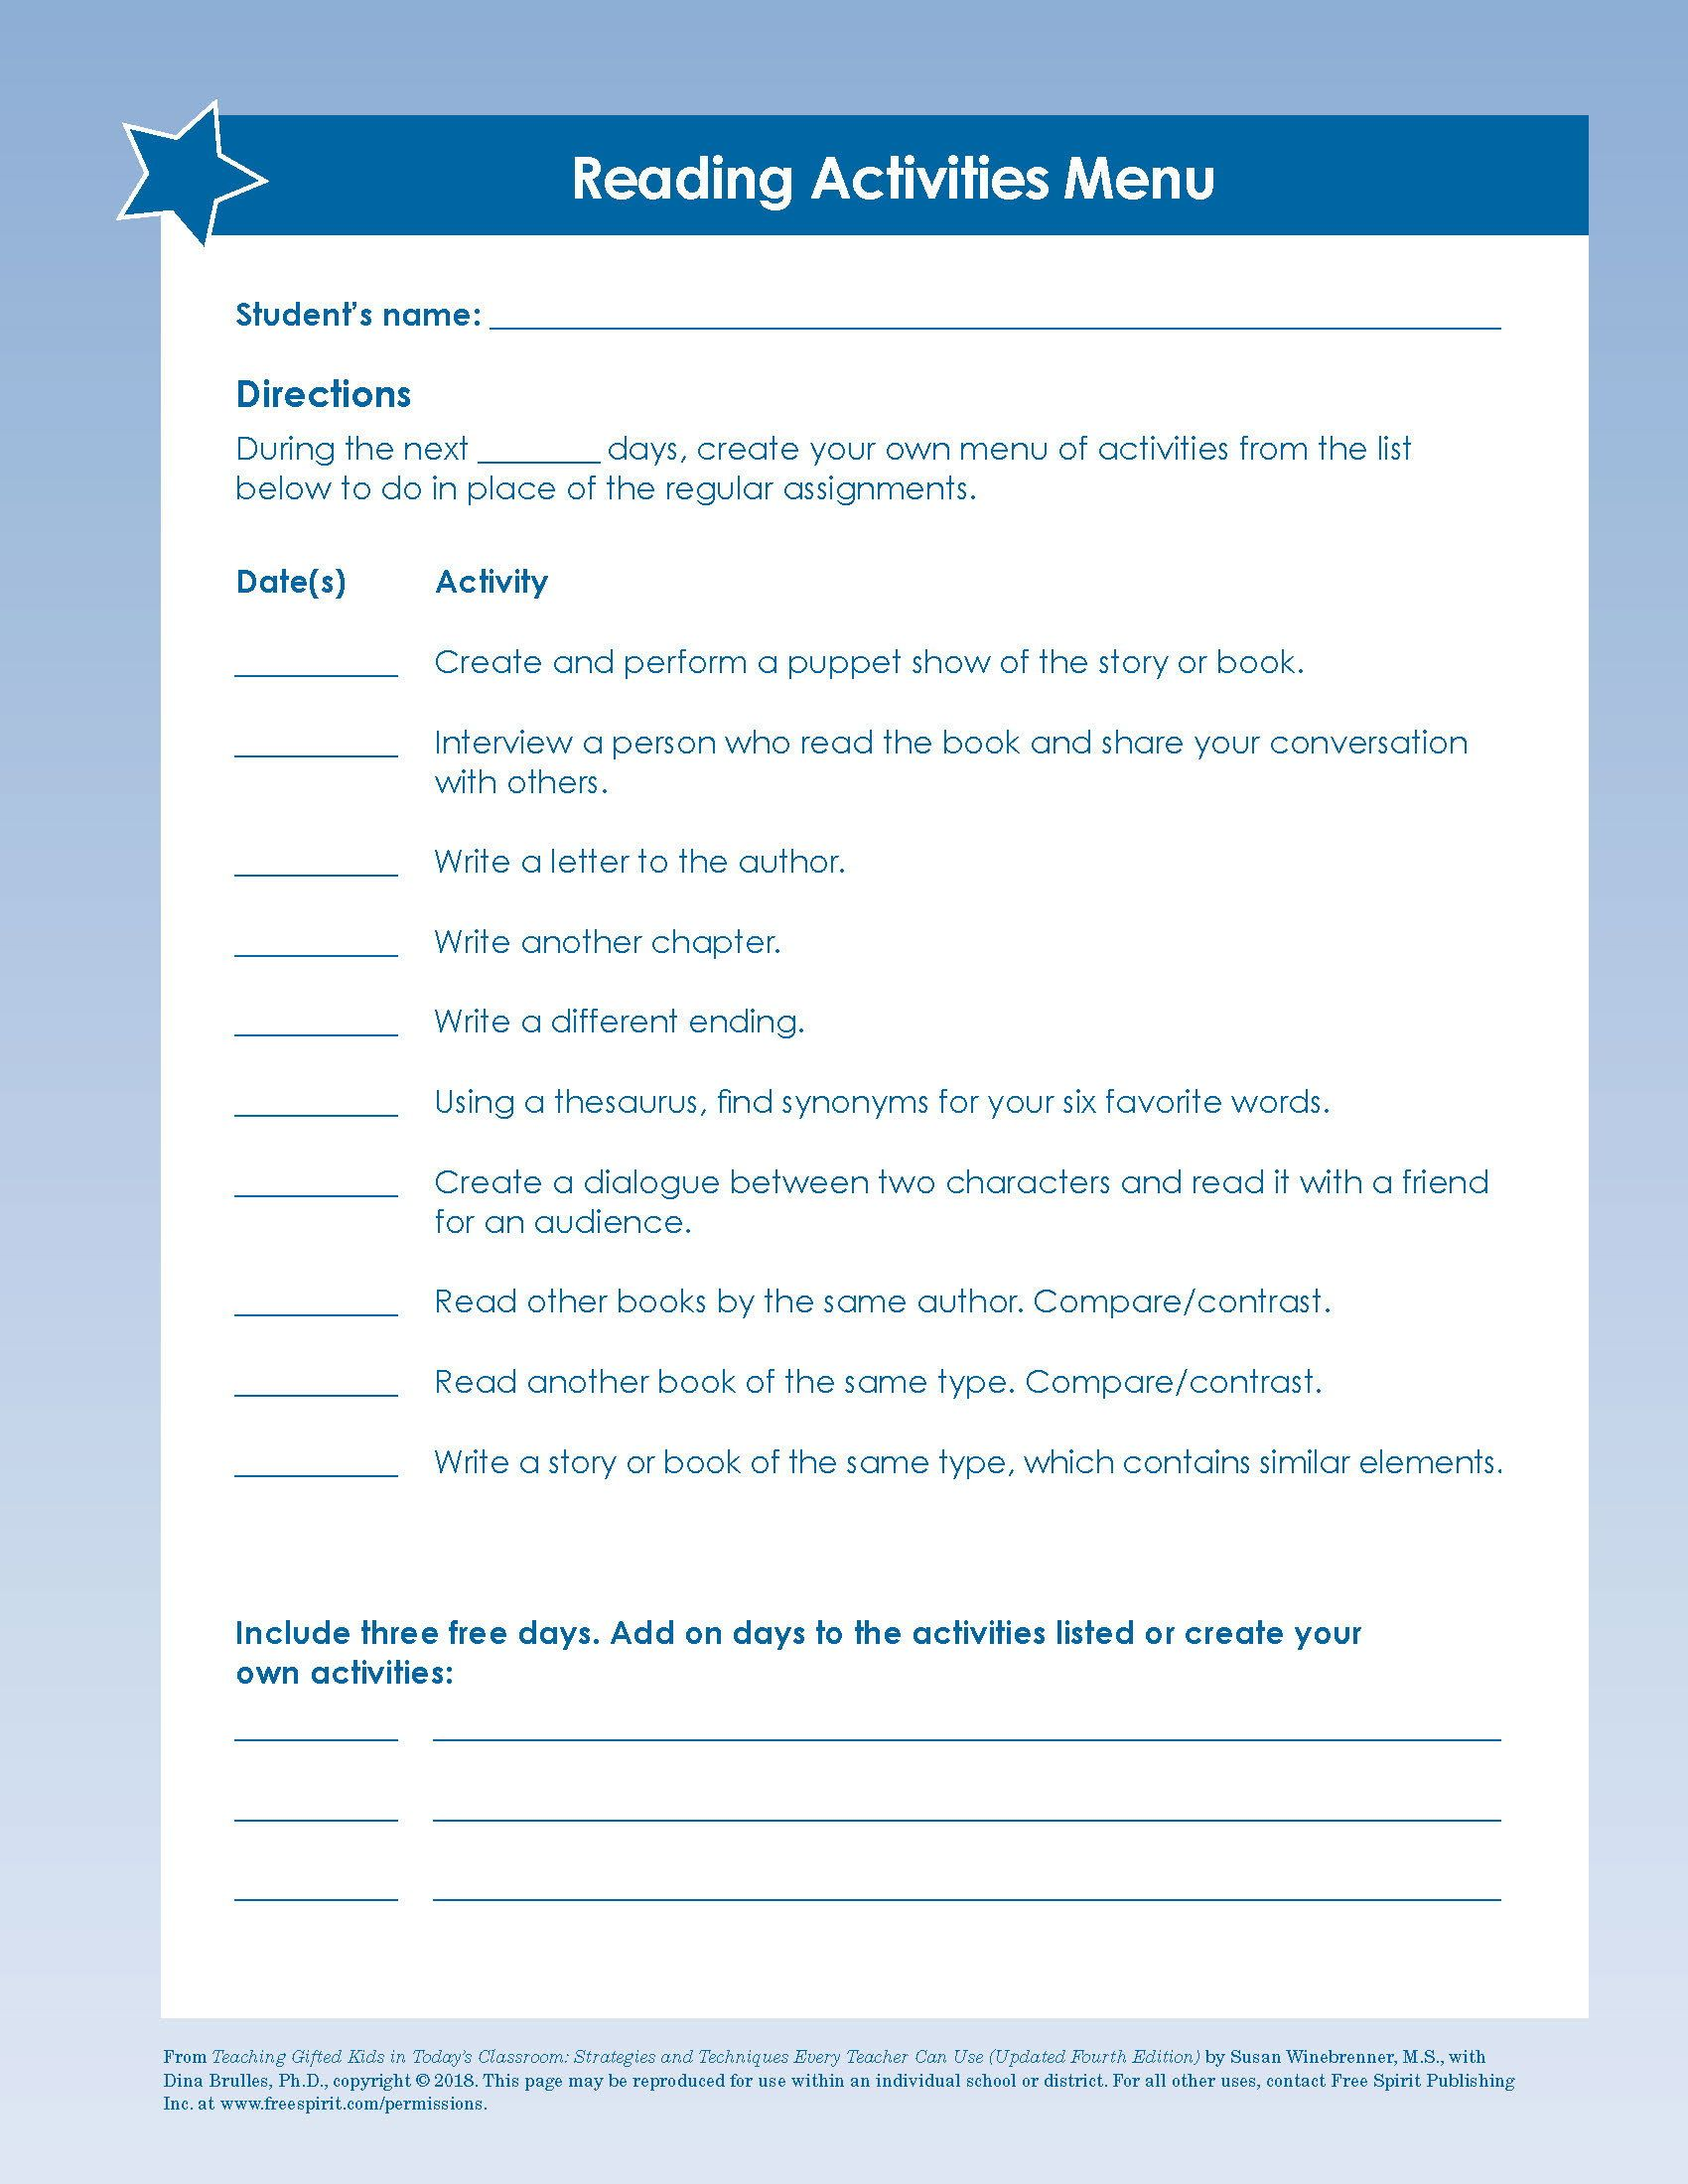 Free Download Reading Activities Menu A Printable Worksheet From Teaching Gifted Kids In Today S Classroom Teaching Gifted Children Teaching Gifted Kids [ 2200 x 1700 Pixel ]